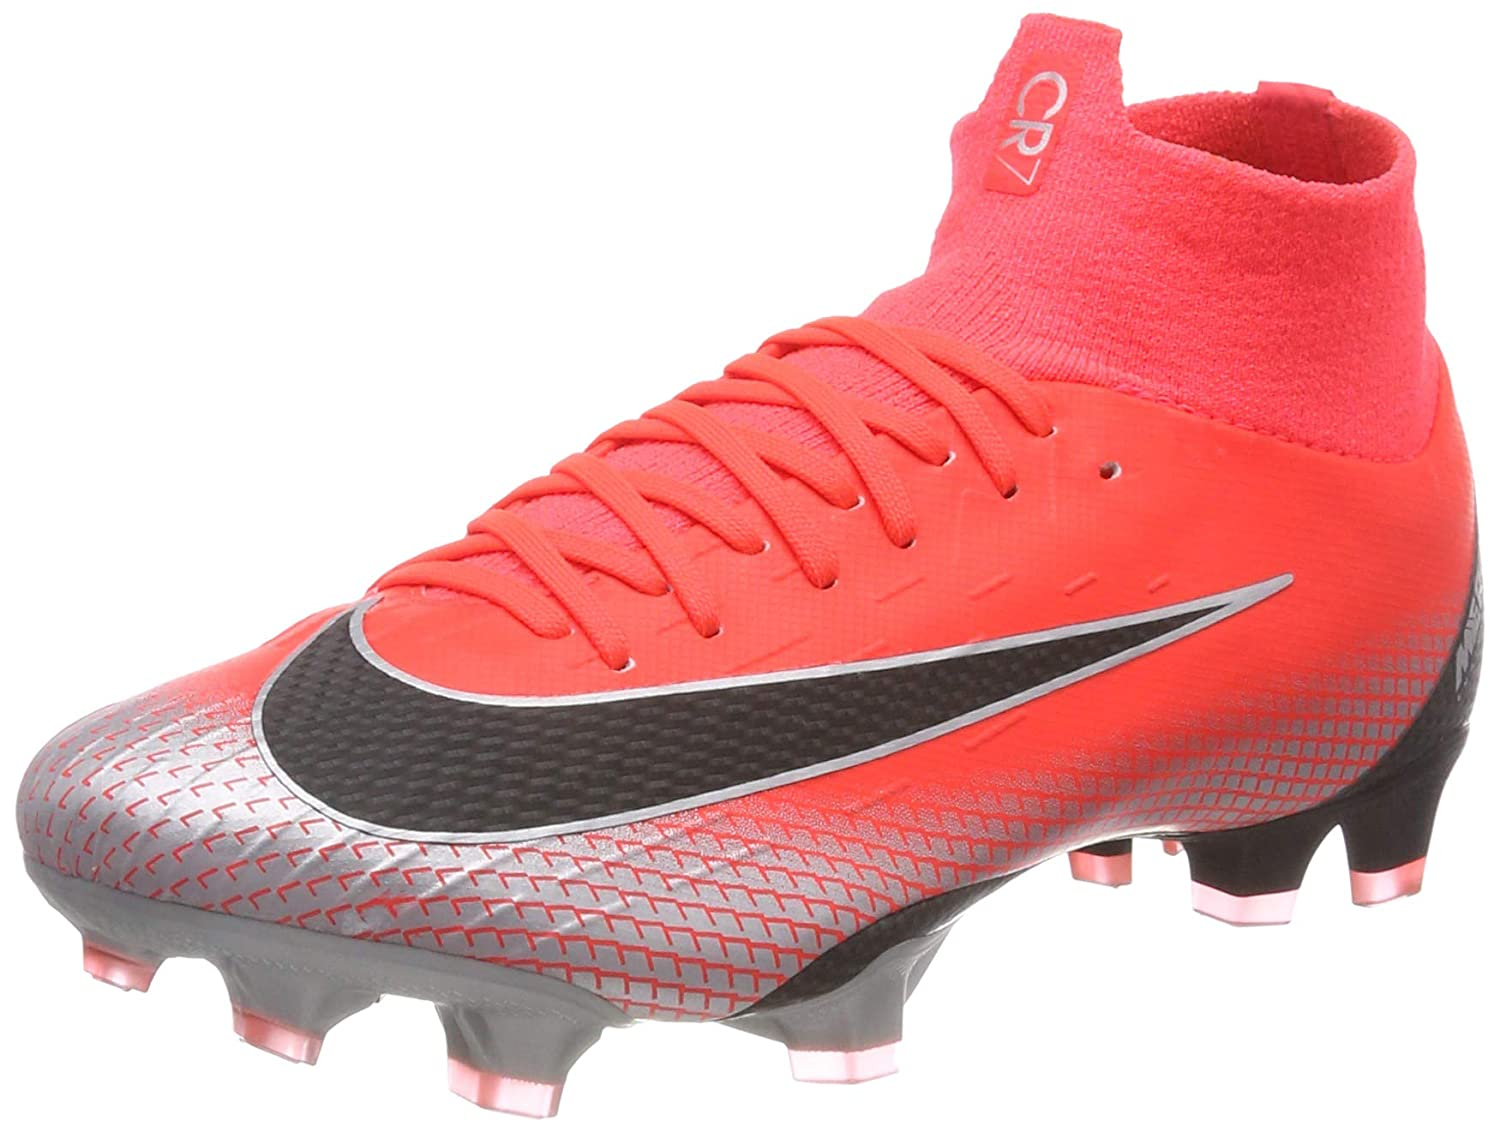 purchase cheap c67fb ca38c Nike Unisex Adults' Superfly 6 Pro Cr7 Fg Footbal Shoes ...